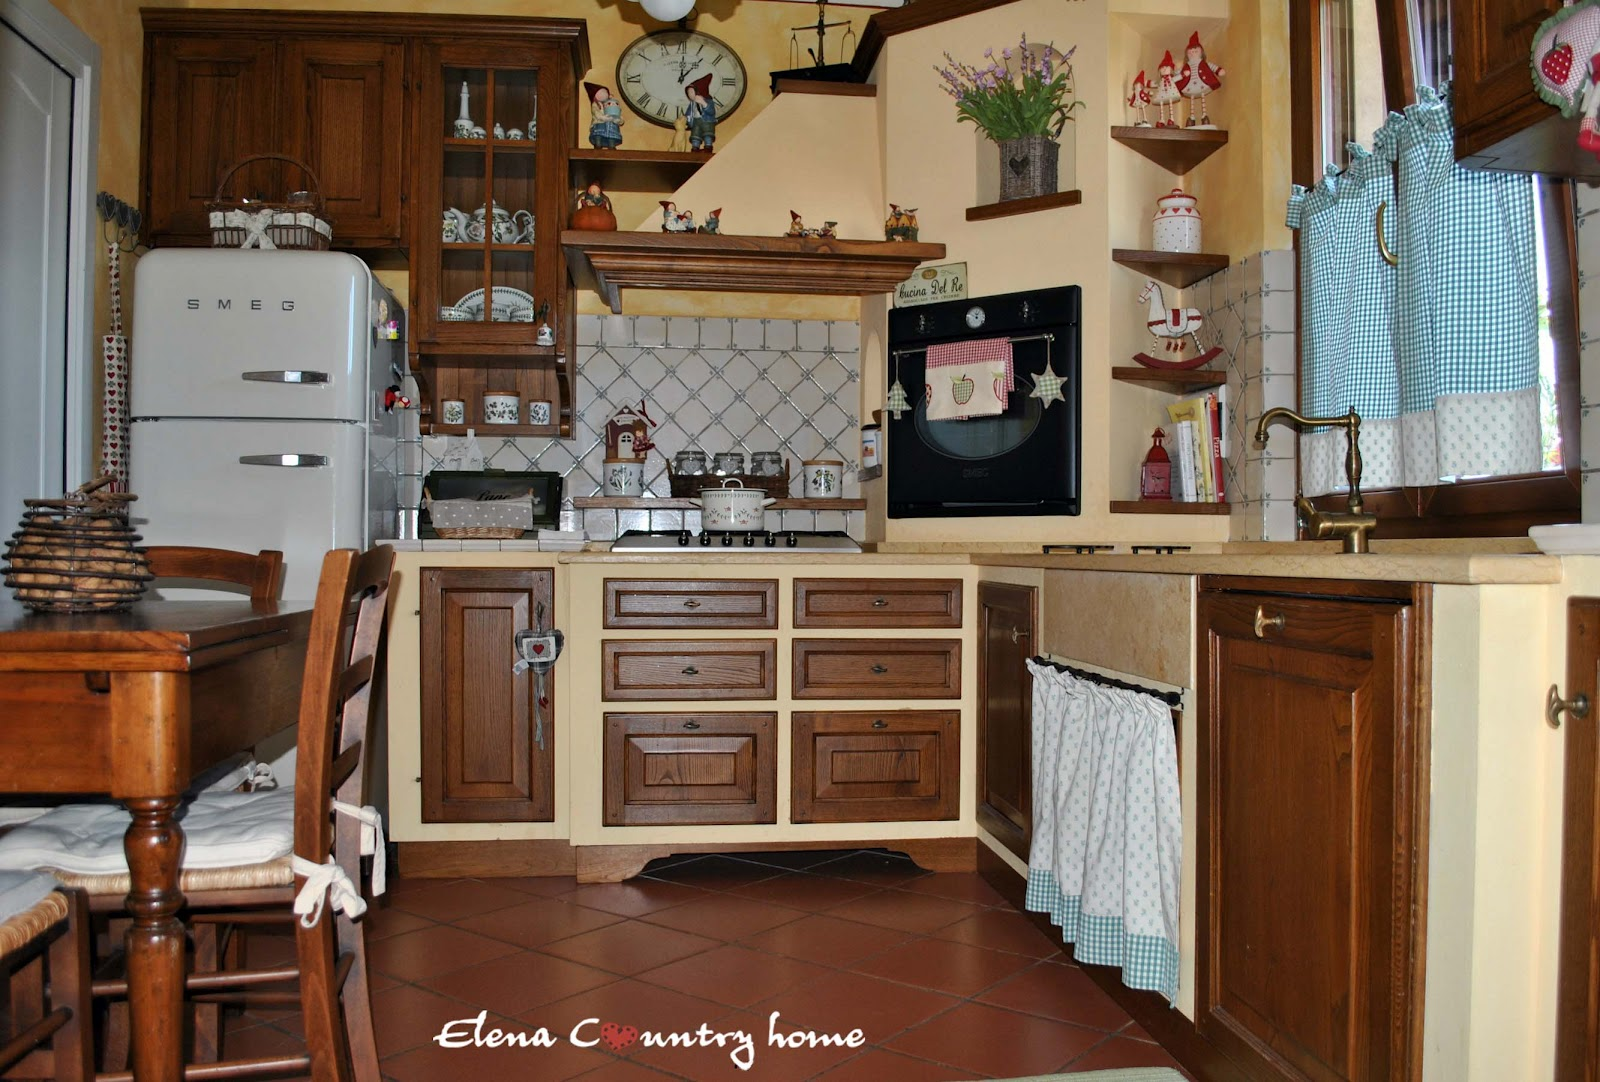 Cucina Country Angolare Elena Country Home La Mia Country Cucina